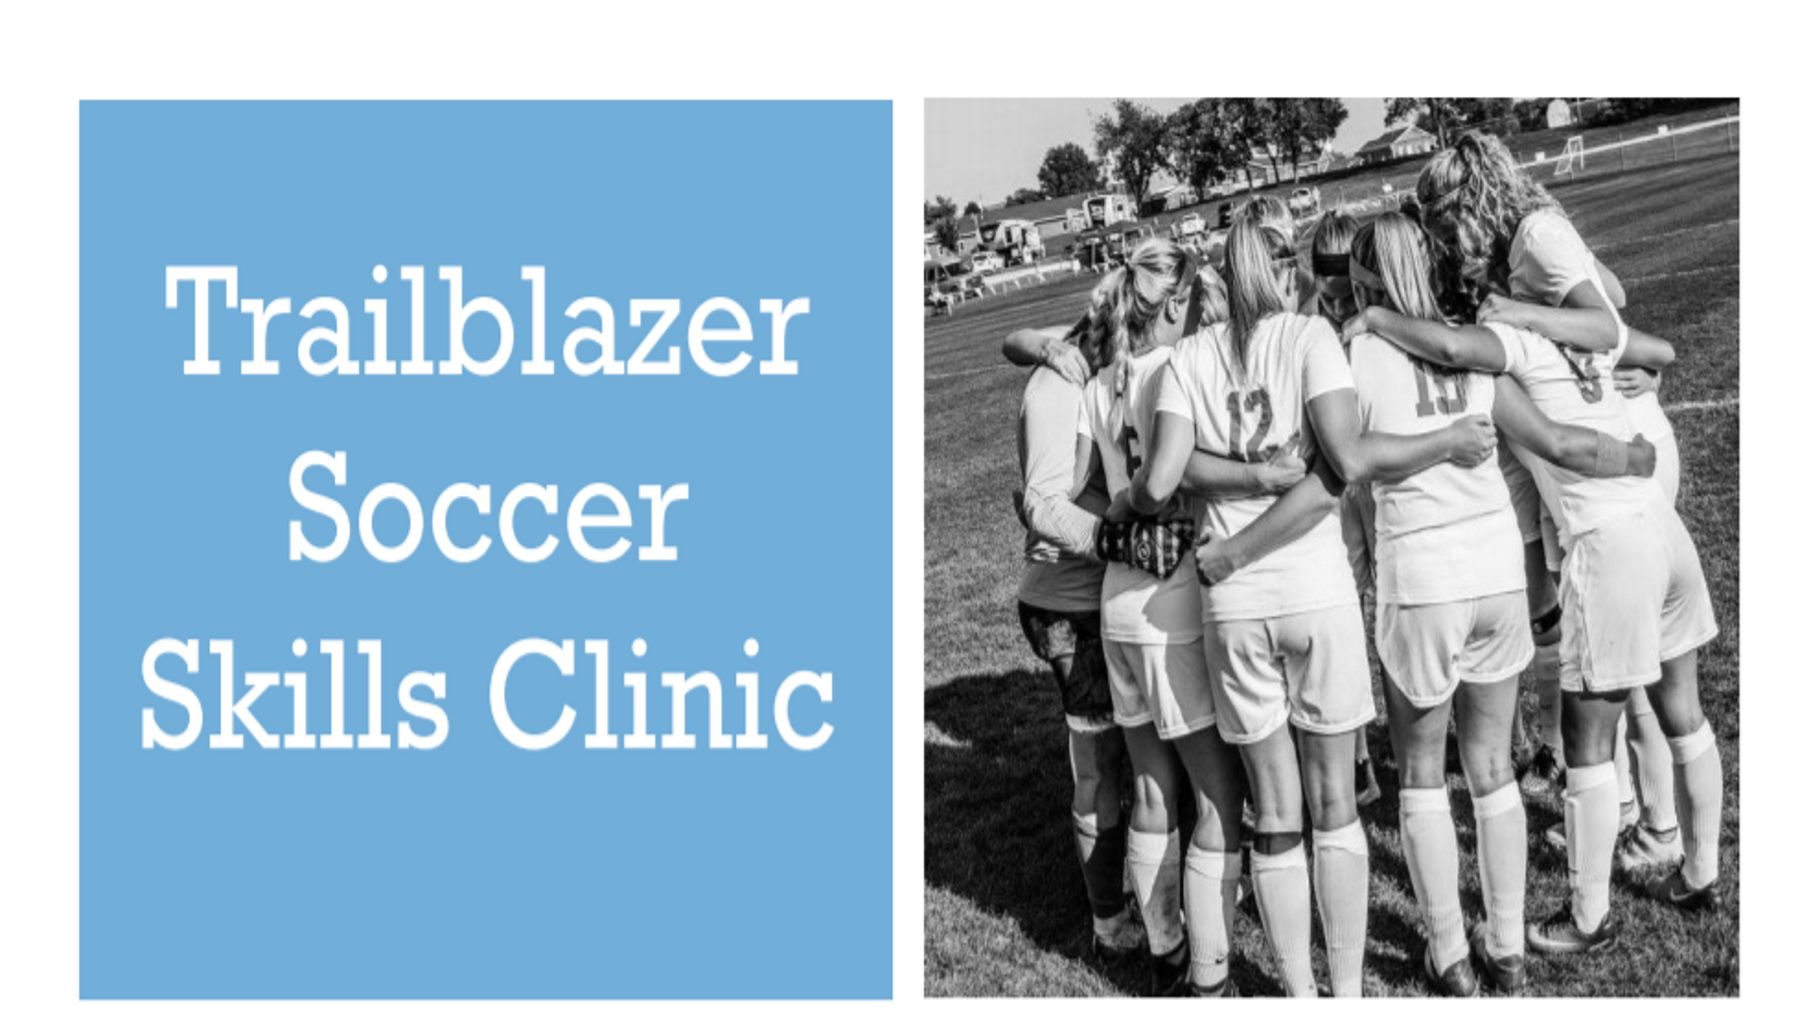 Trailblazer Soccer to host skills clinic image